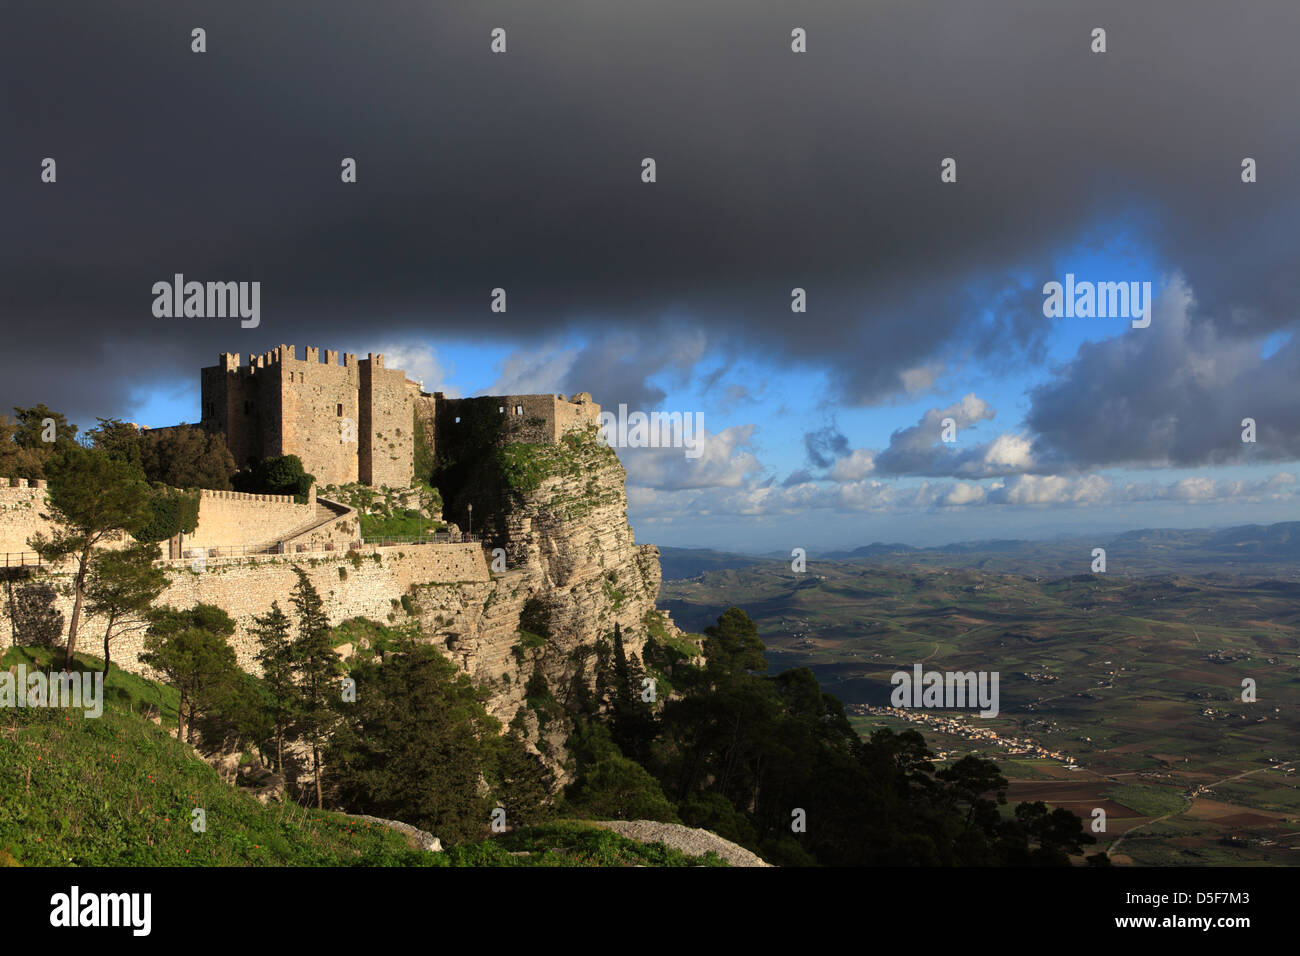 The Venus Castle at Erice, Sicily, Italy - Stock Image